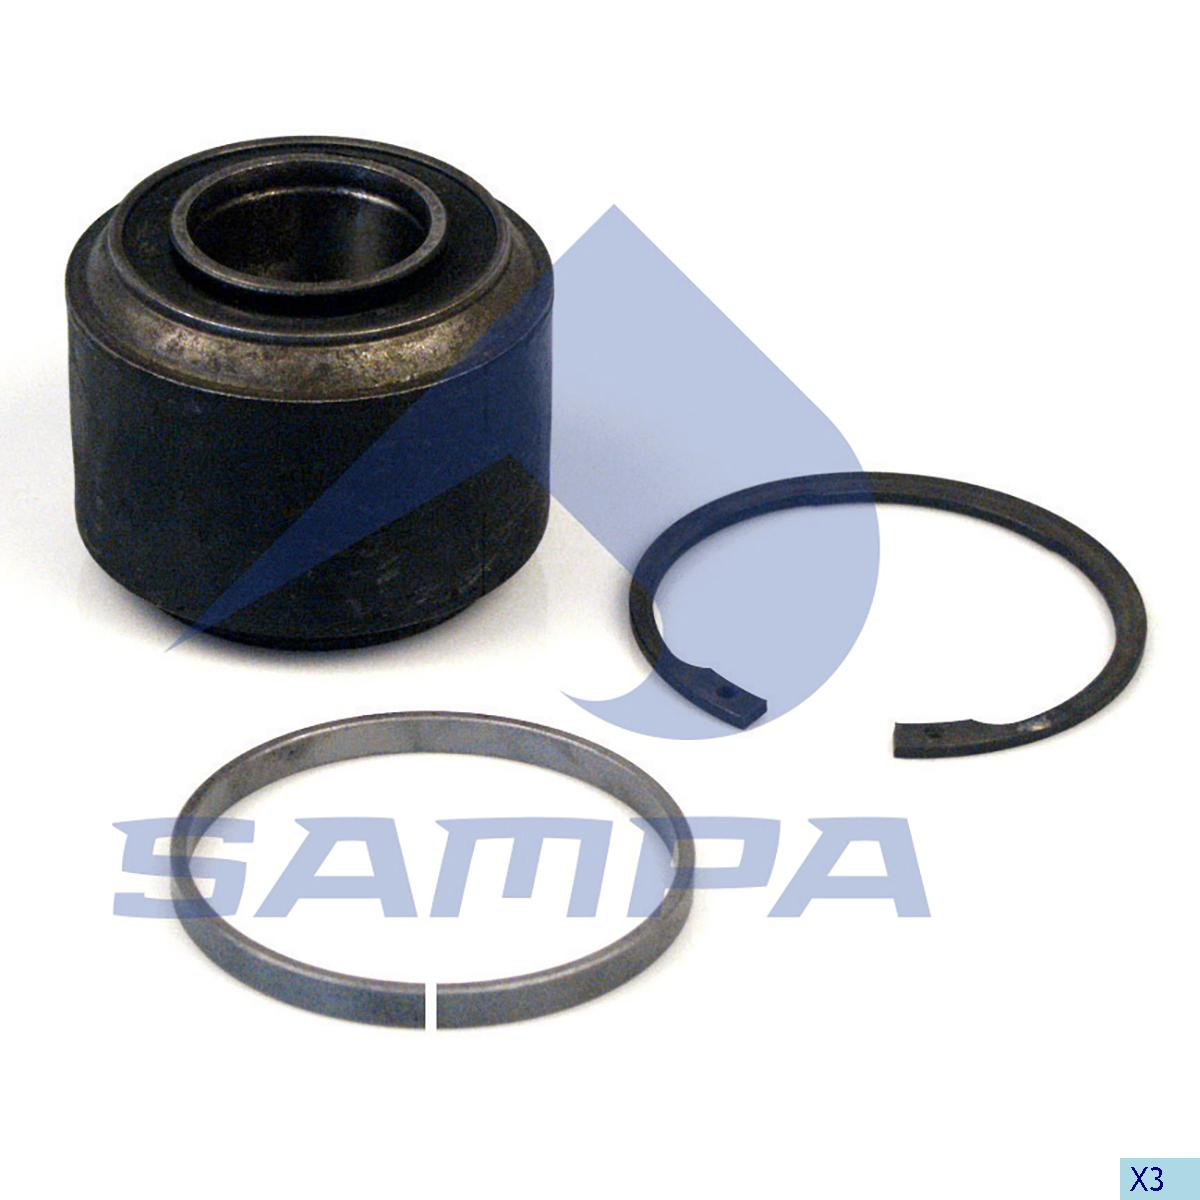 Repair Kit, Axle Rod, Setra, Suspension